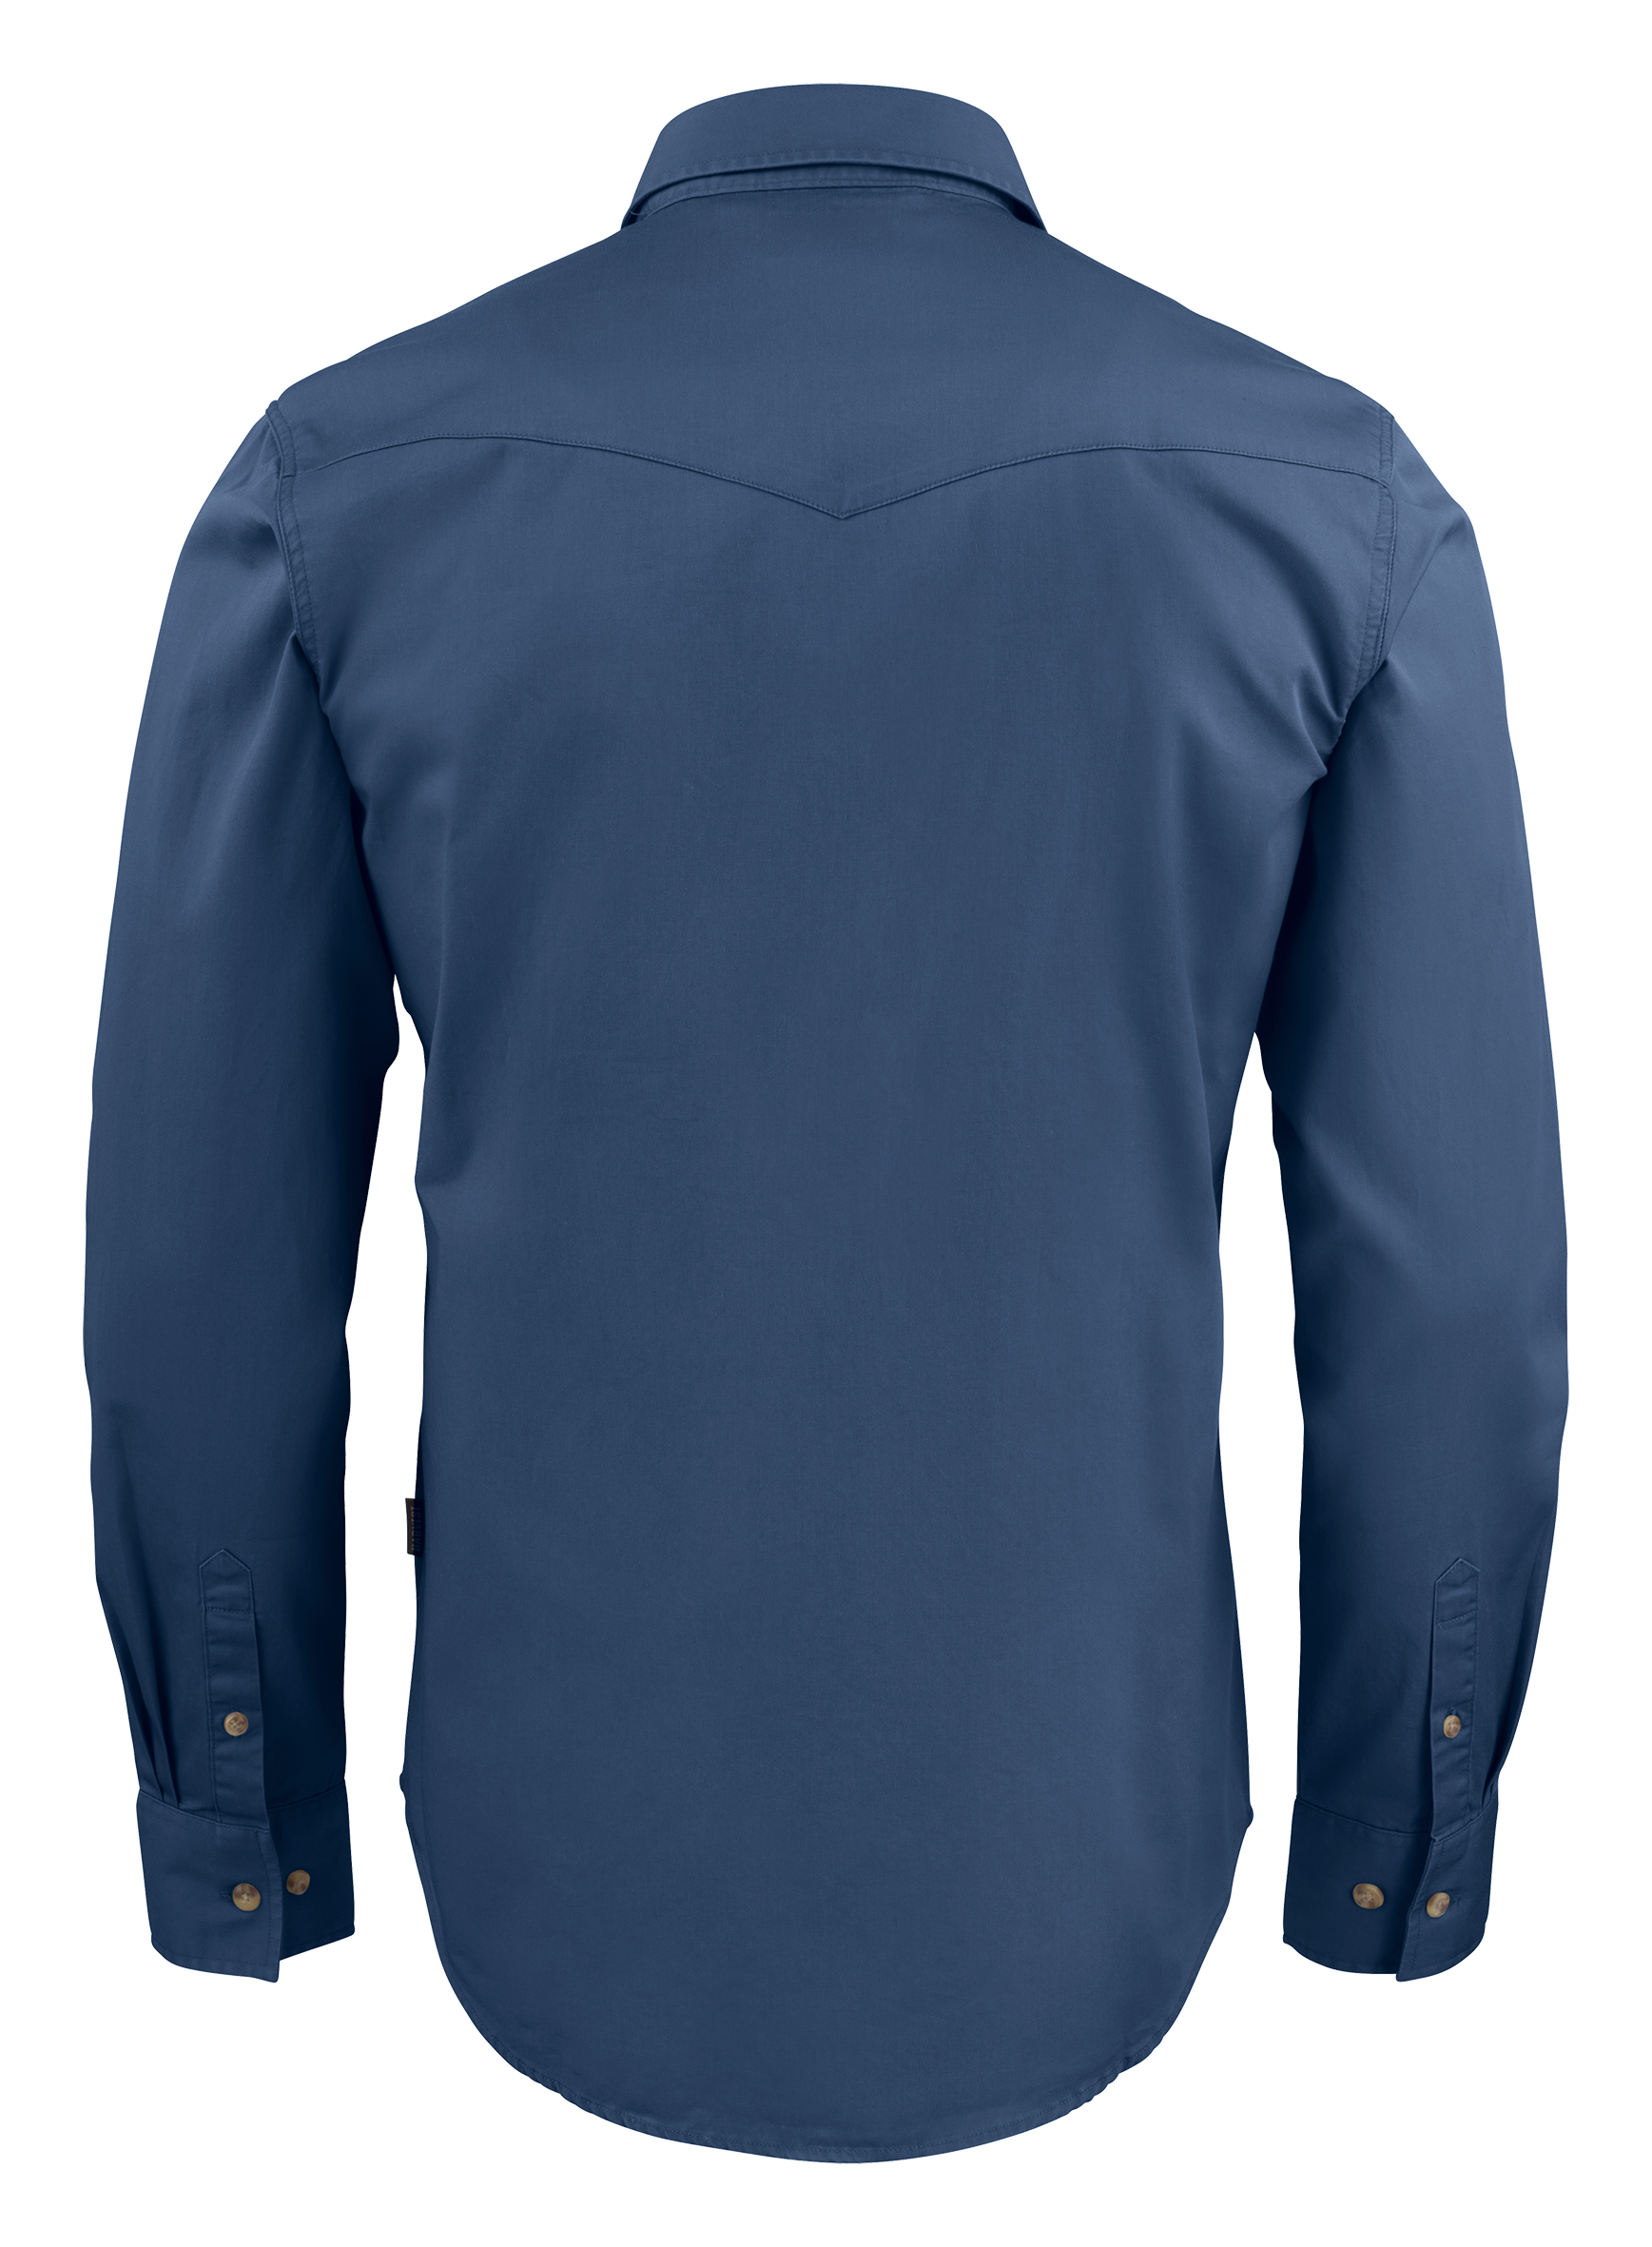 Unisex Treemore Shirt in 555 Faded Blue (Back View)